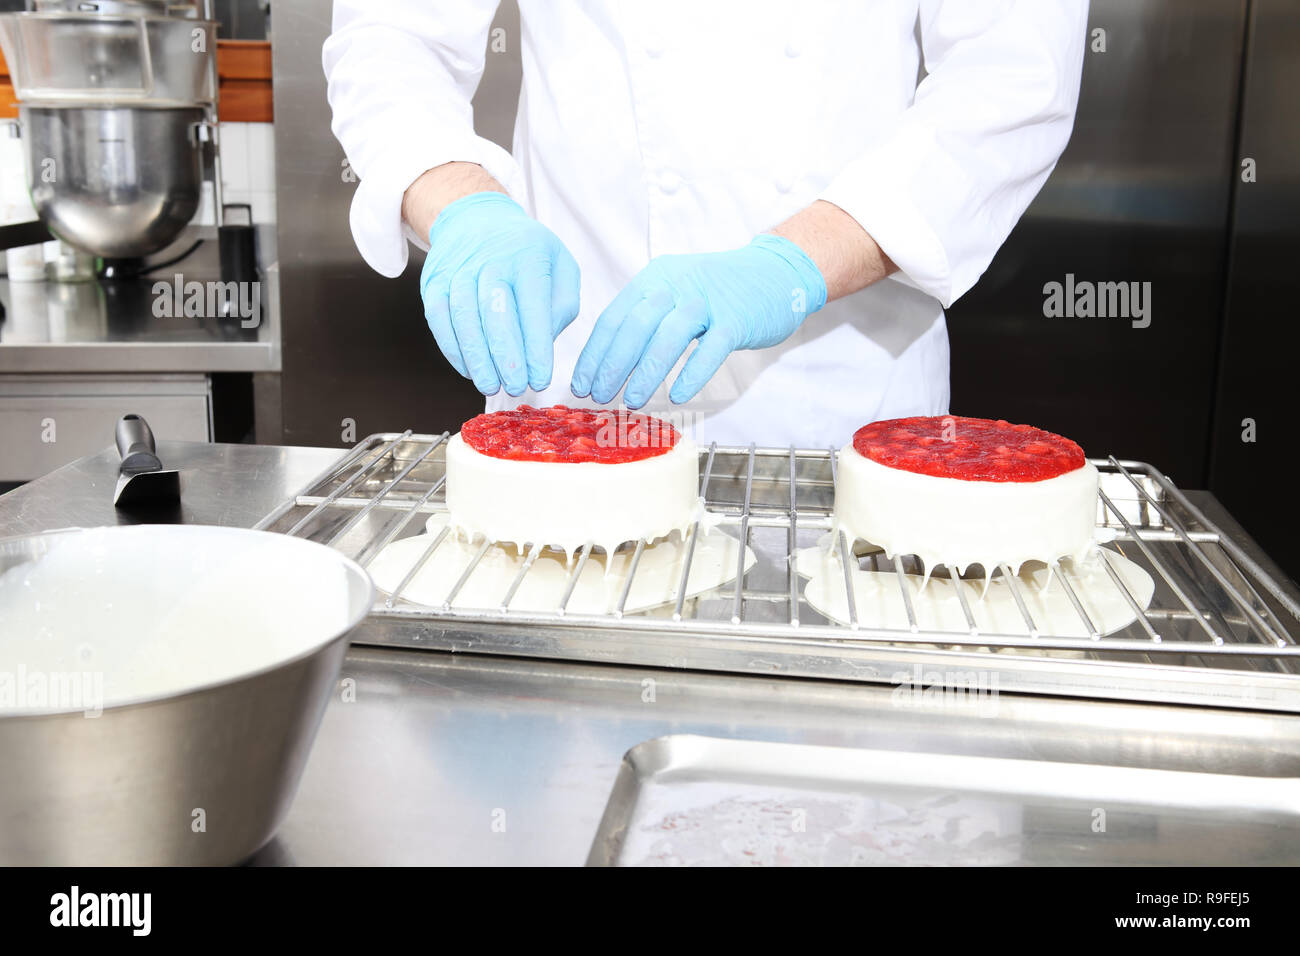 hands pastry chef prepares a cake, cover with icing and decorate with strawberries, works on a stainless steel industrial kitchen work top - Stock Image